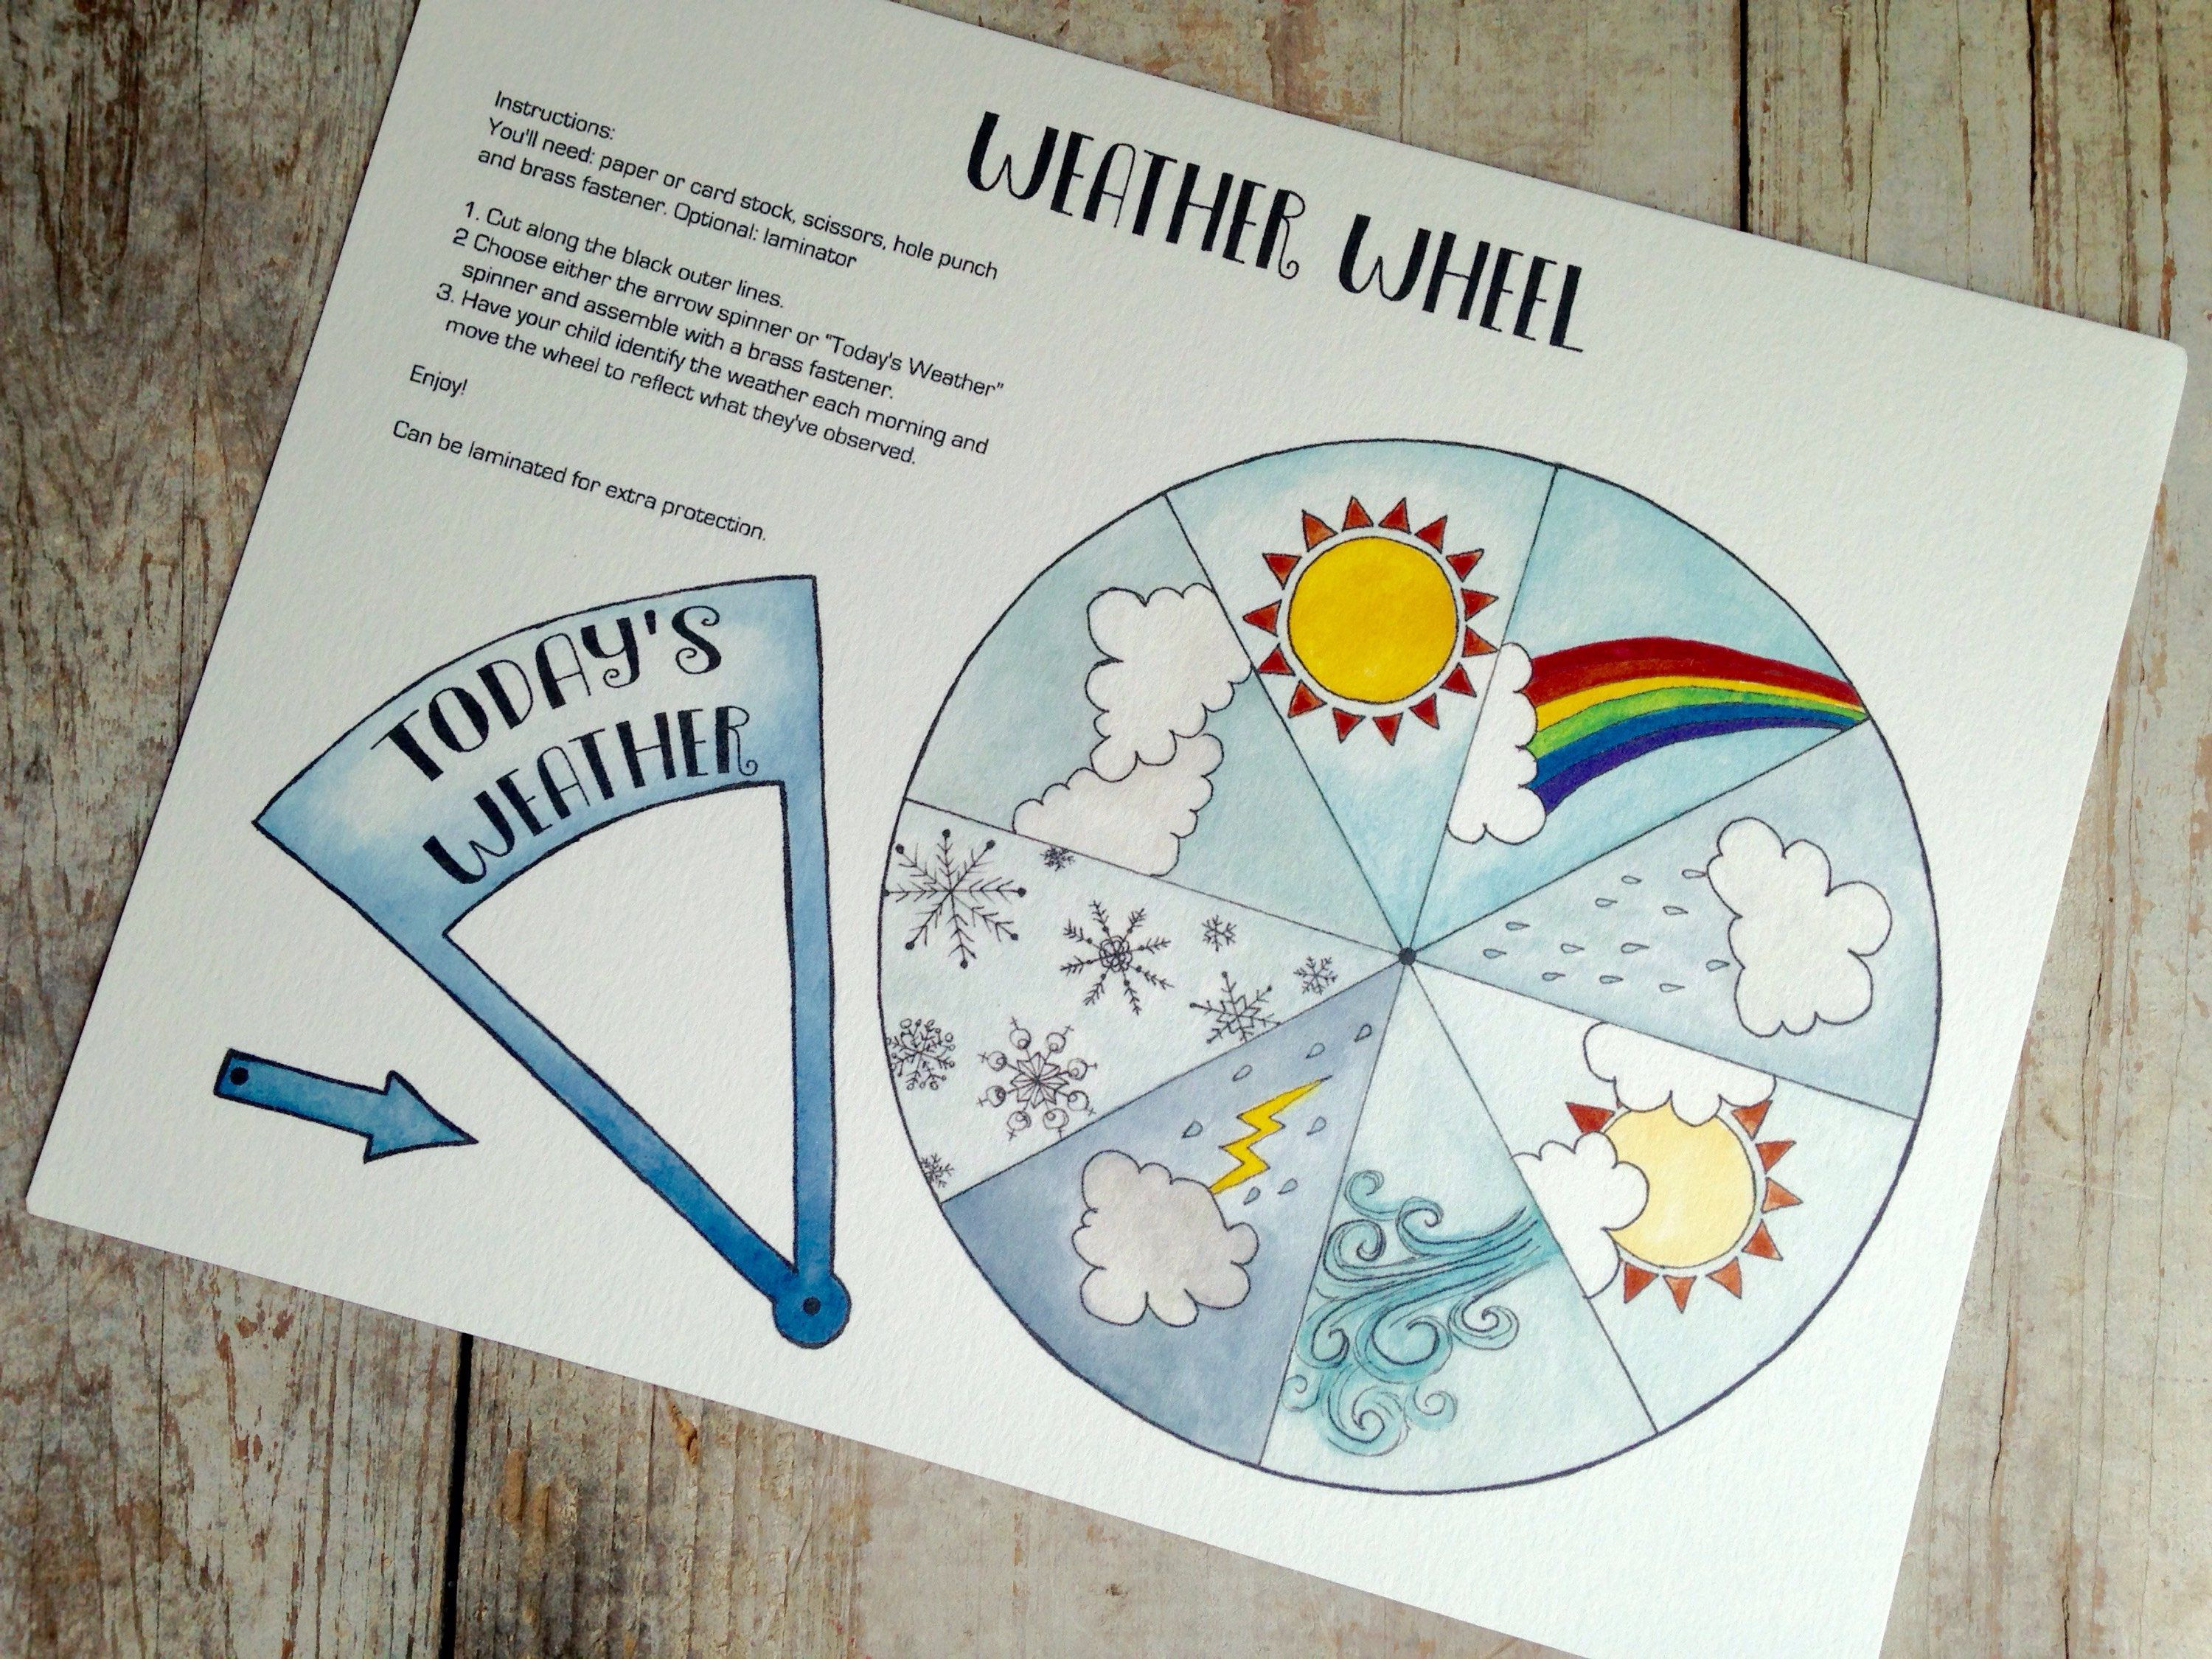 Today S Weather Wheel Digital Download Kids Printable